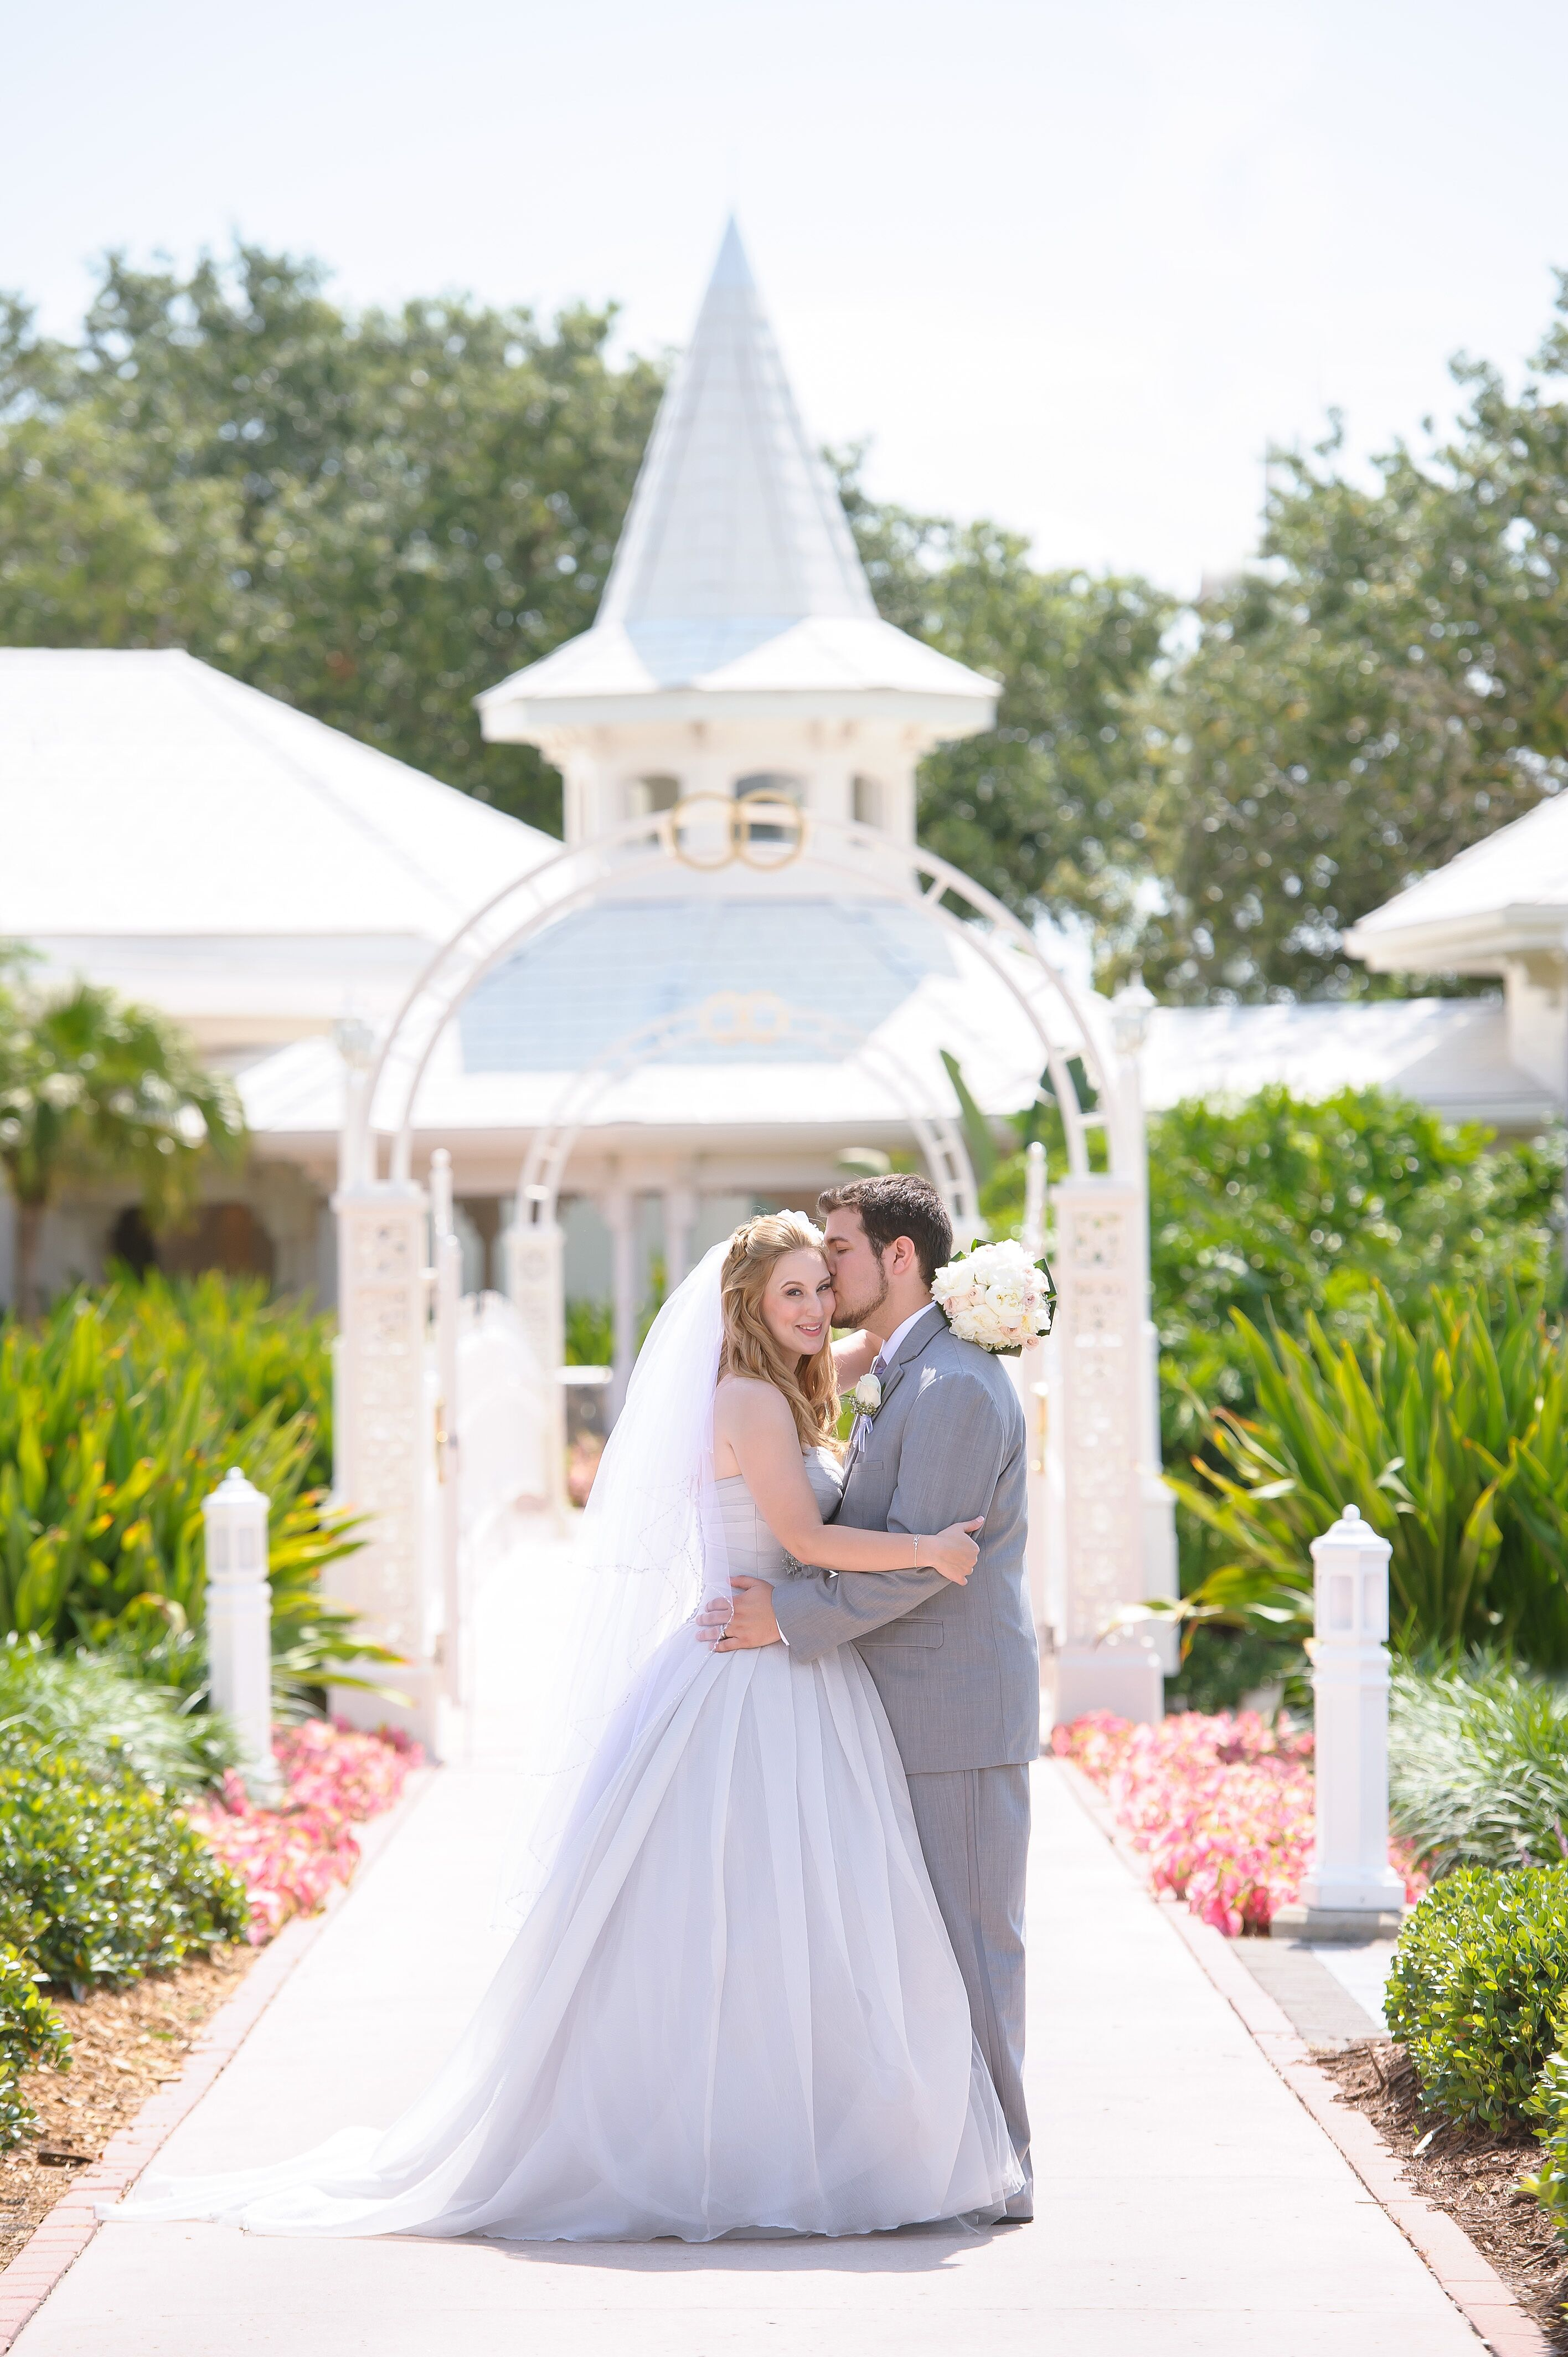 A Disney Inspired Wedding At Disney S Grand Floridian